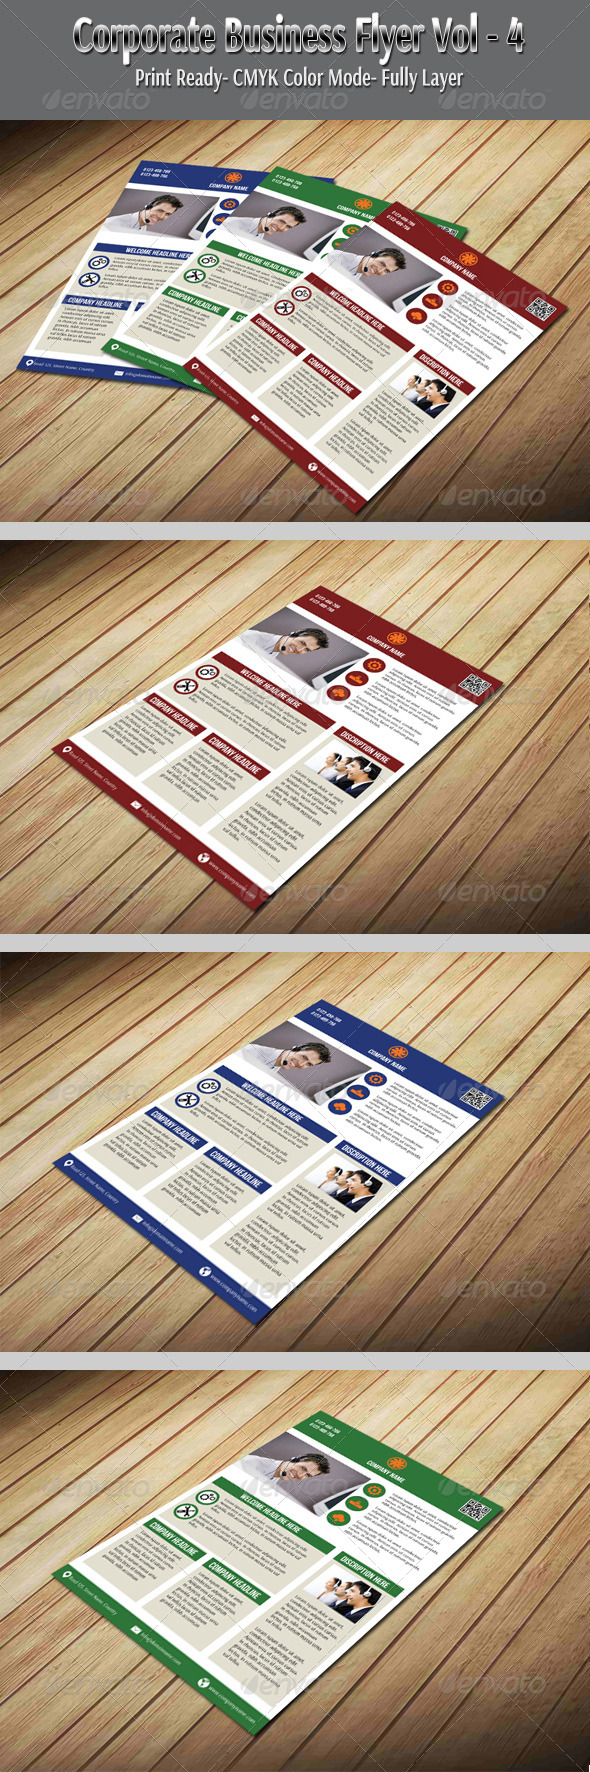 Corporate Business Flyer Vol-4 - Corporate Flyers